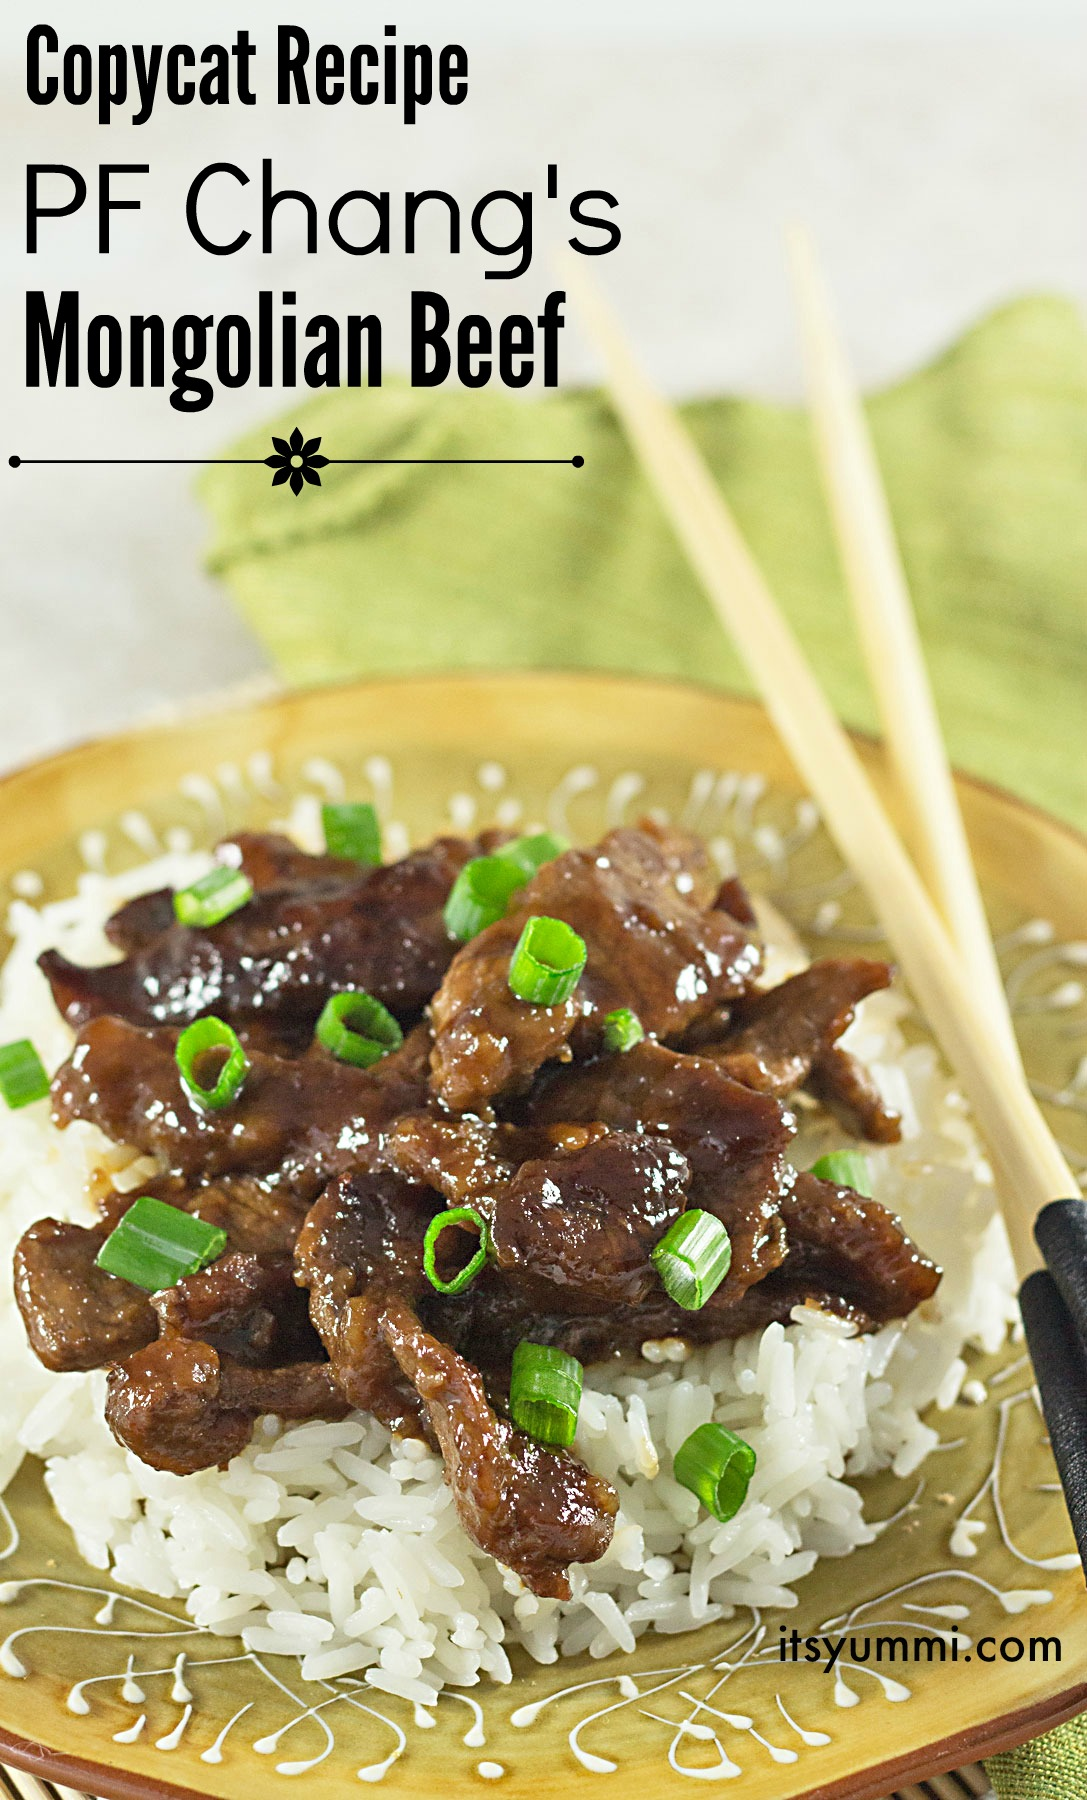 Copycat PF Changs Monglian Beef One Of The Best Recipes That I